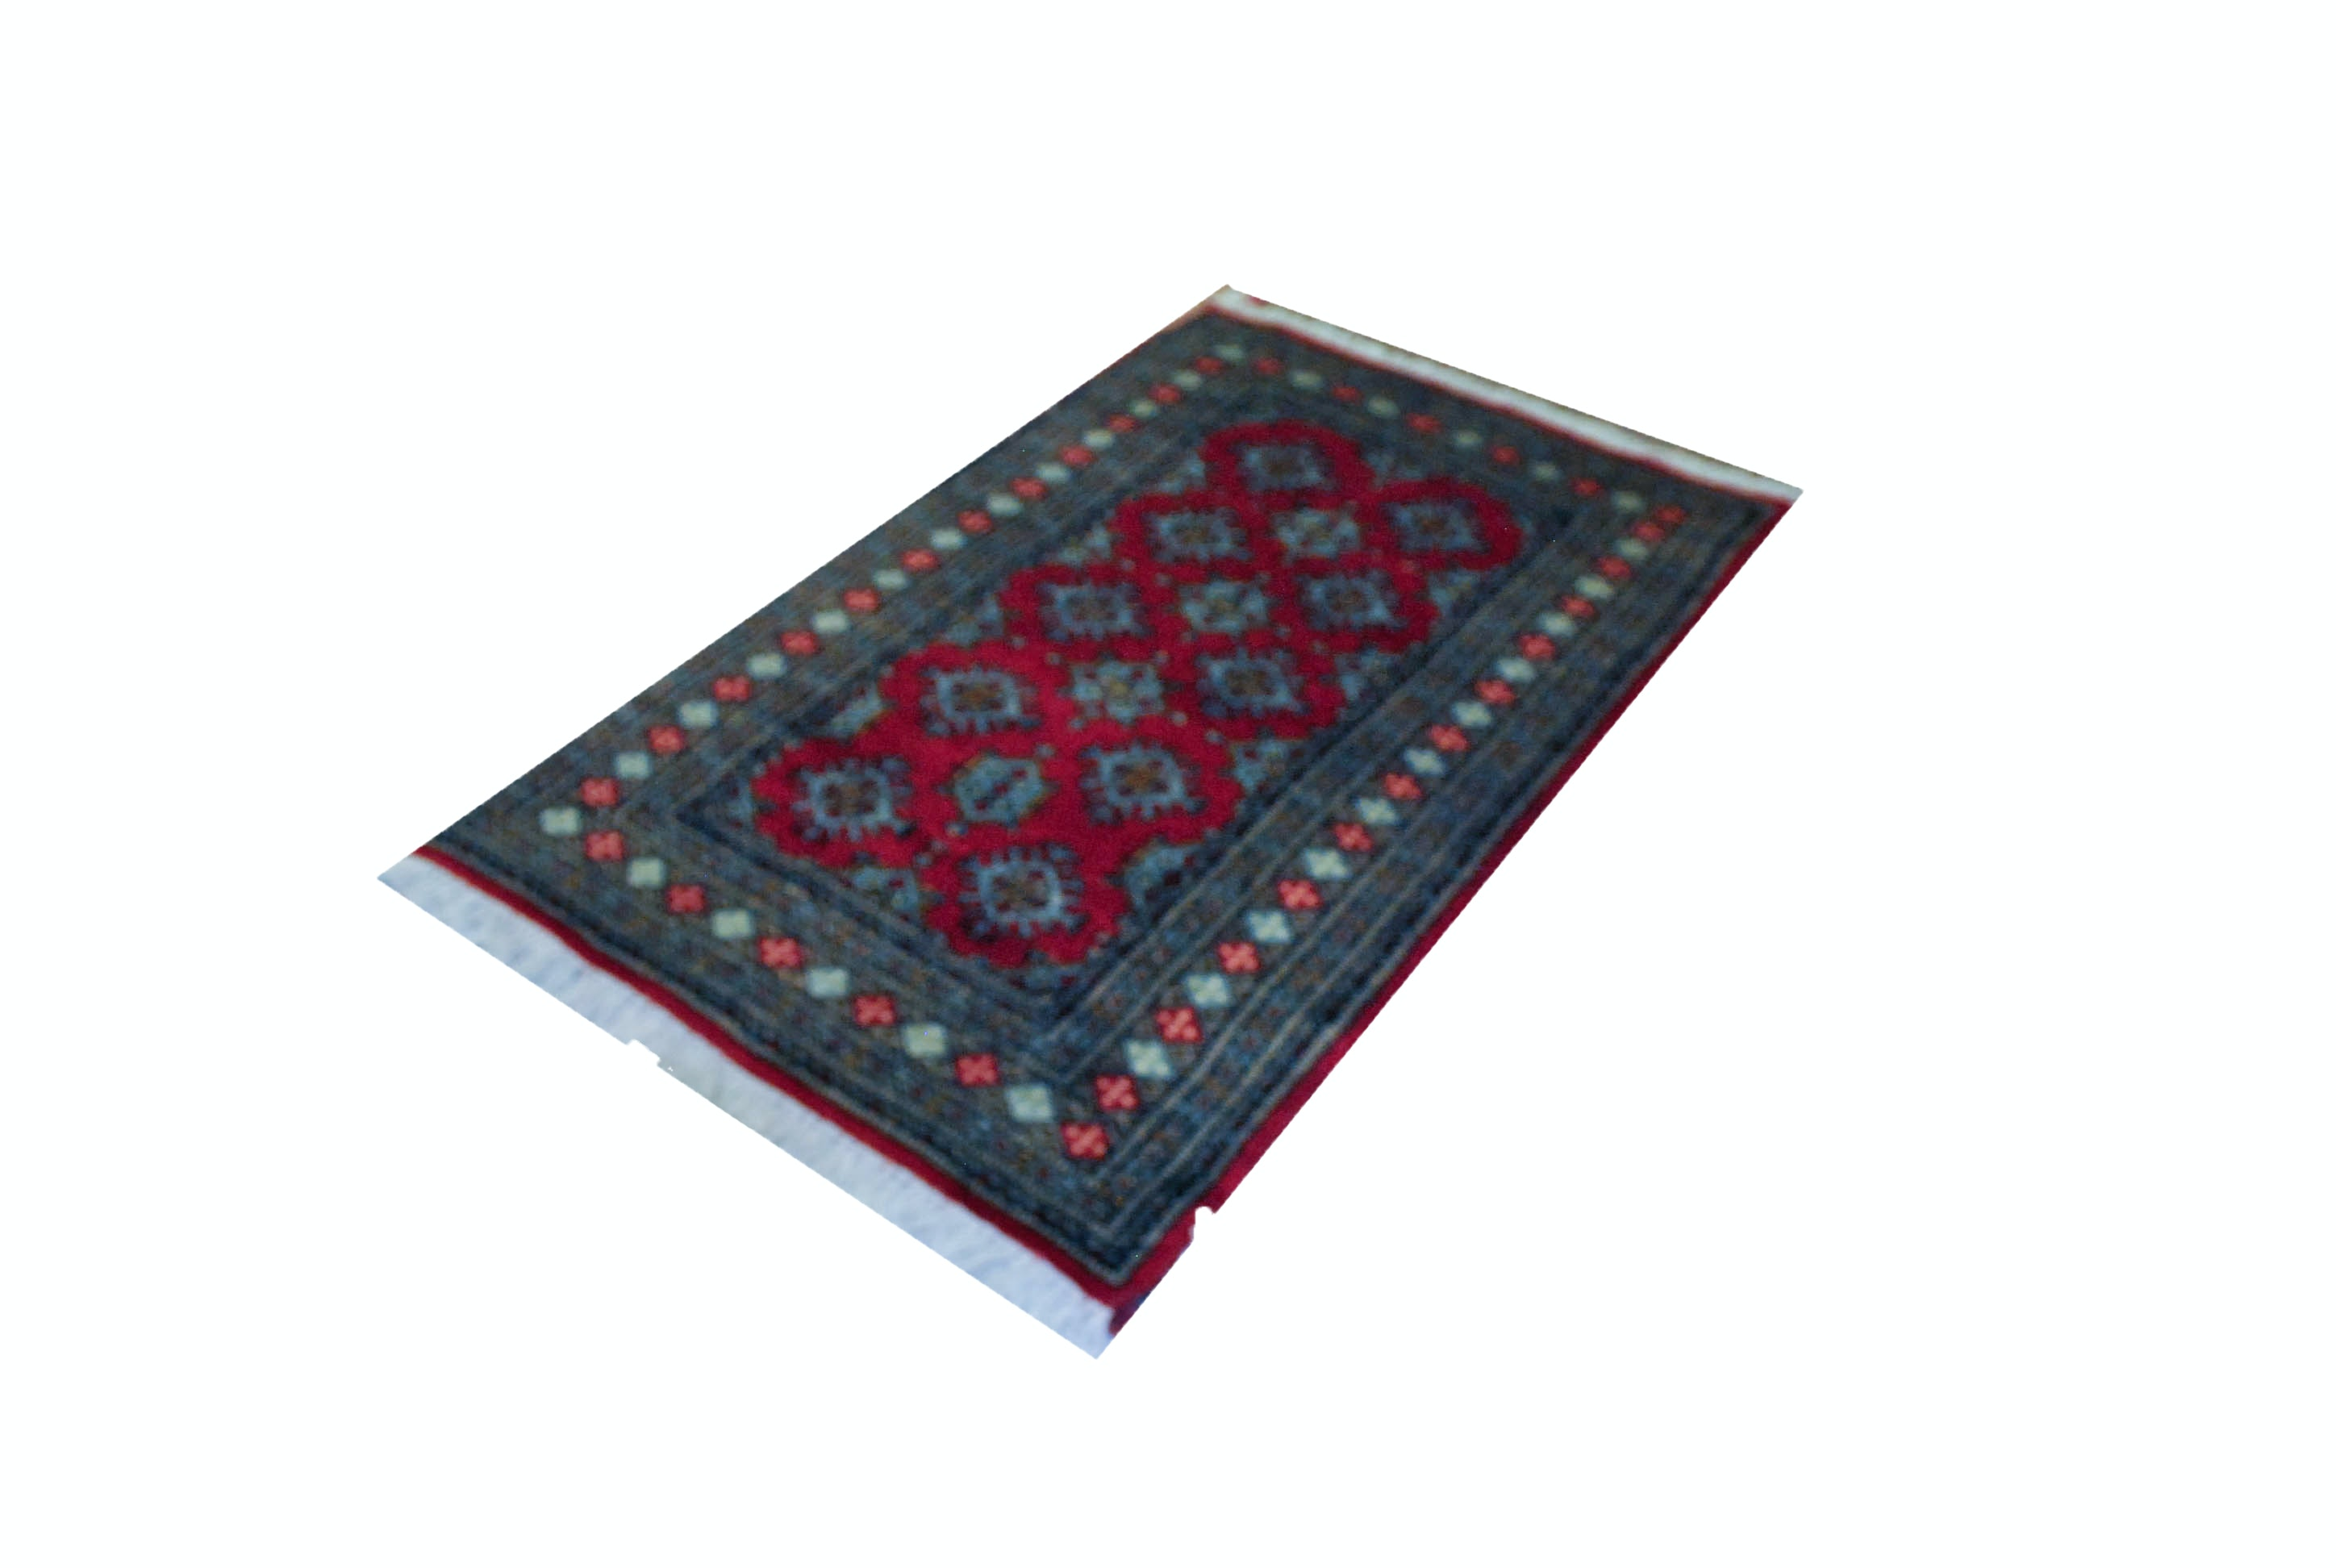 Handwoven Persian Style Area Rug with Repeated Medallions